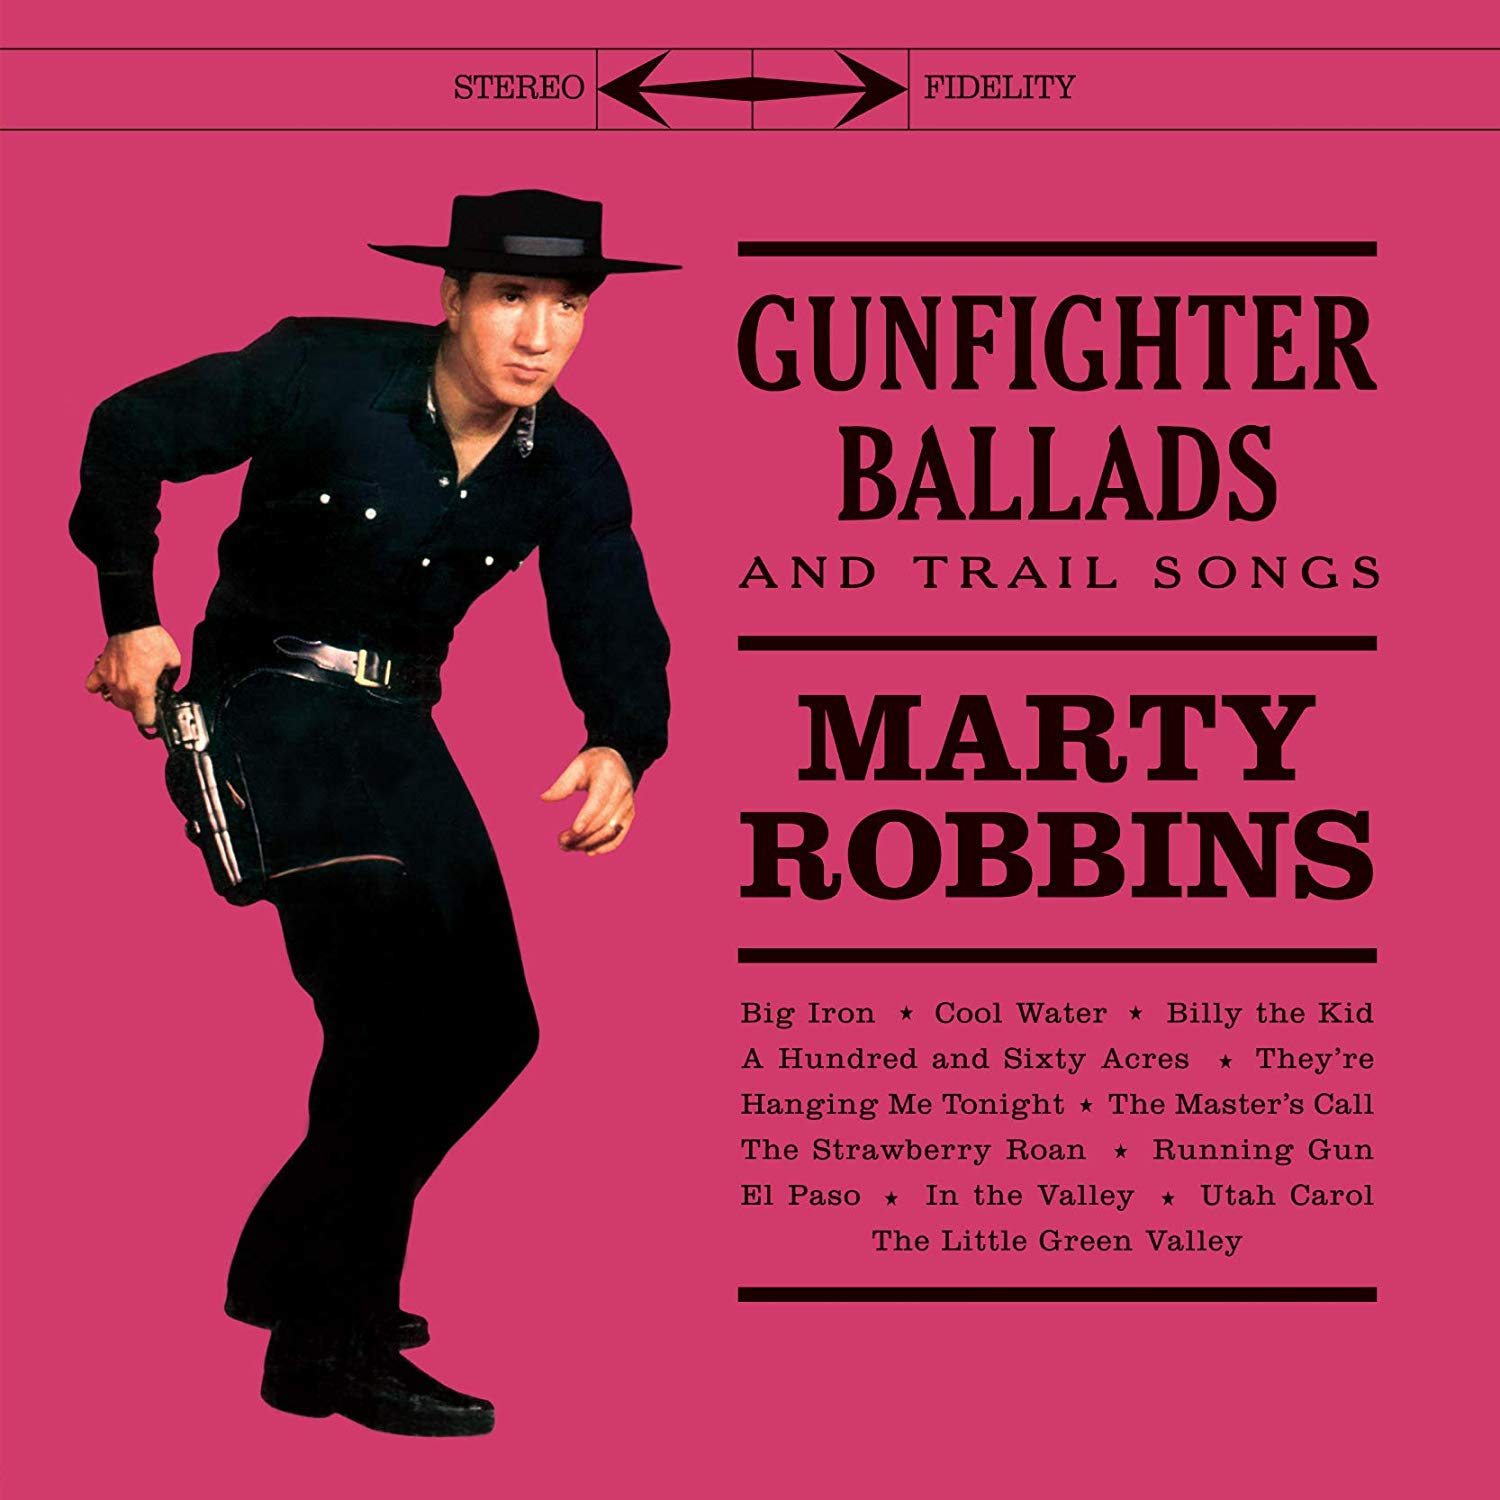 Marty Robbins - Gunfighter Ballads & Trail Songs [Colored Vinyl] [180 Gram]